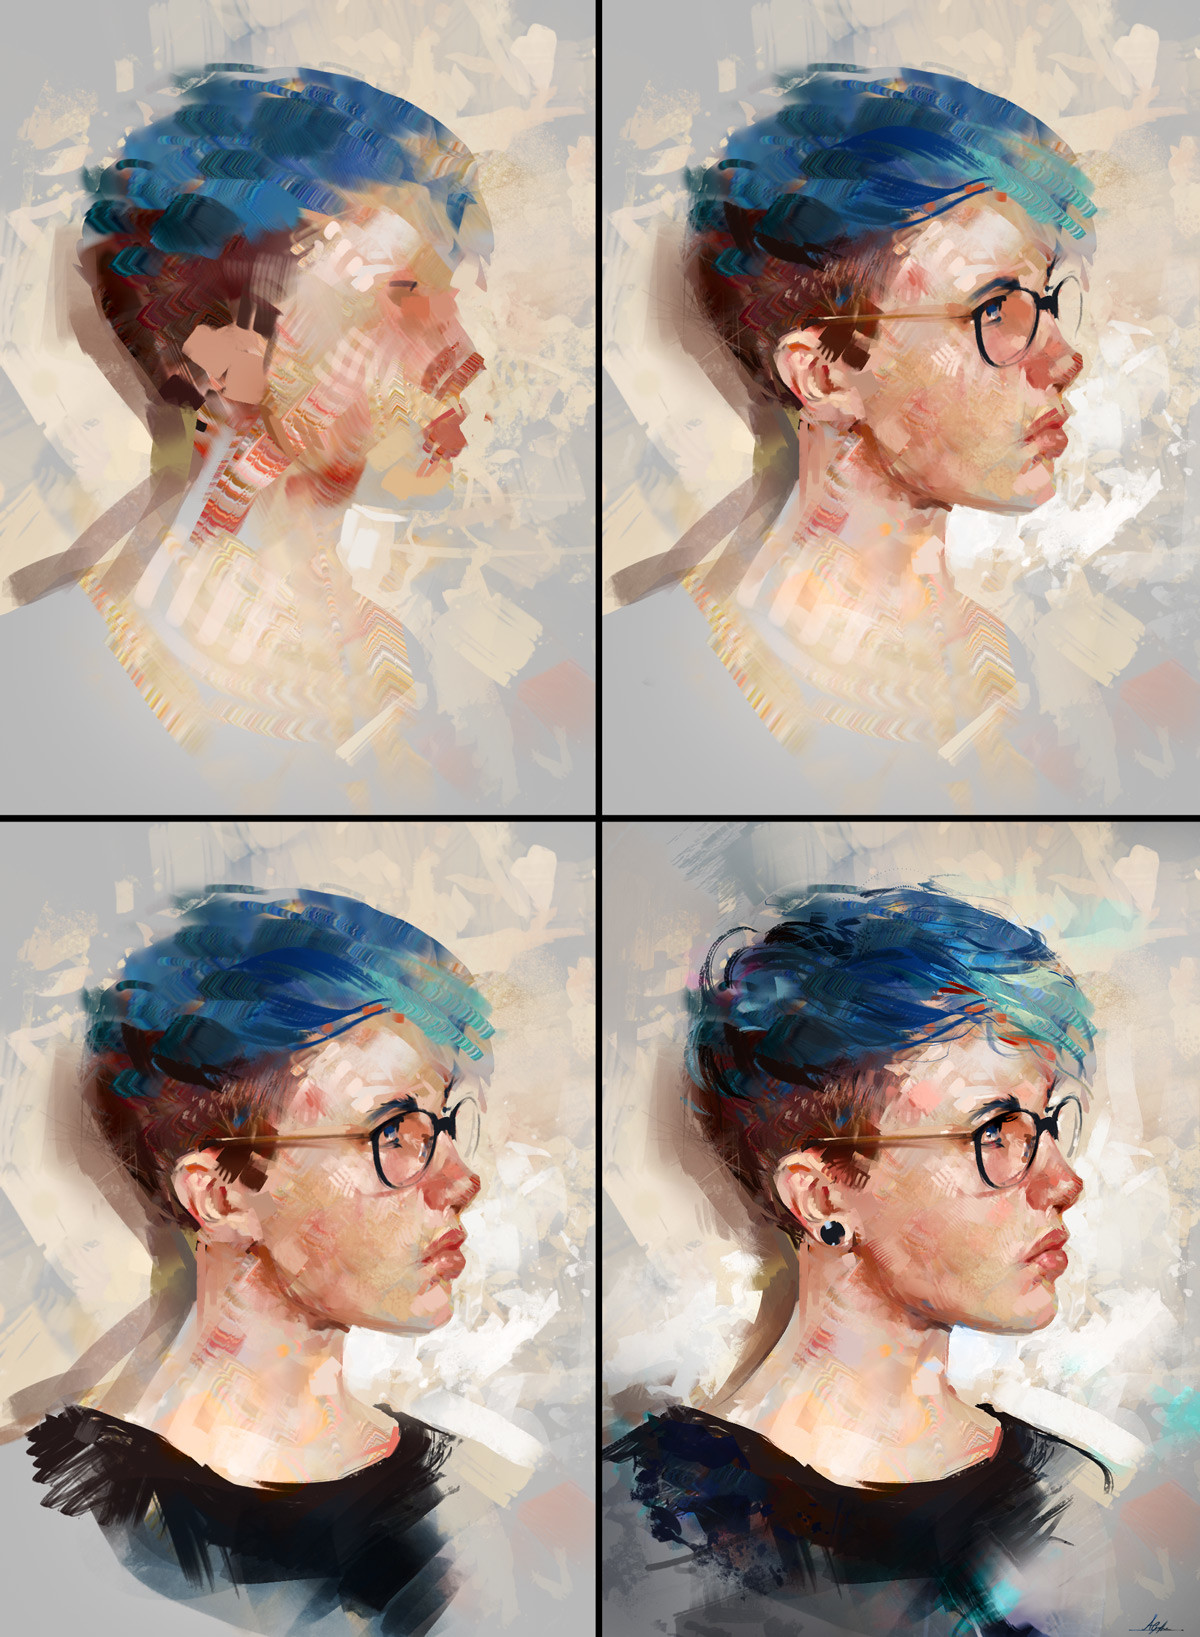 Aaron griffin sdfghjk process